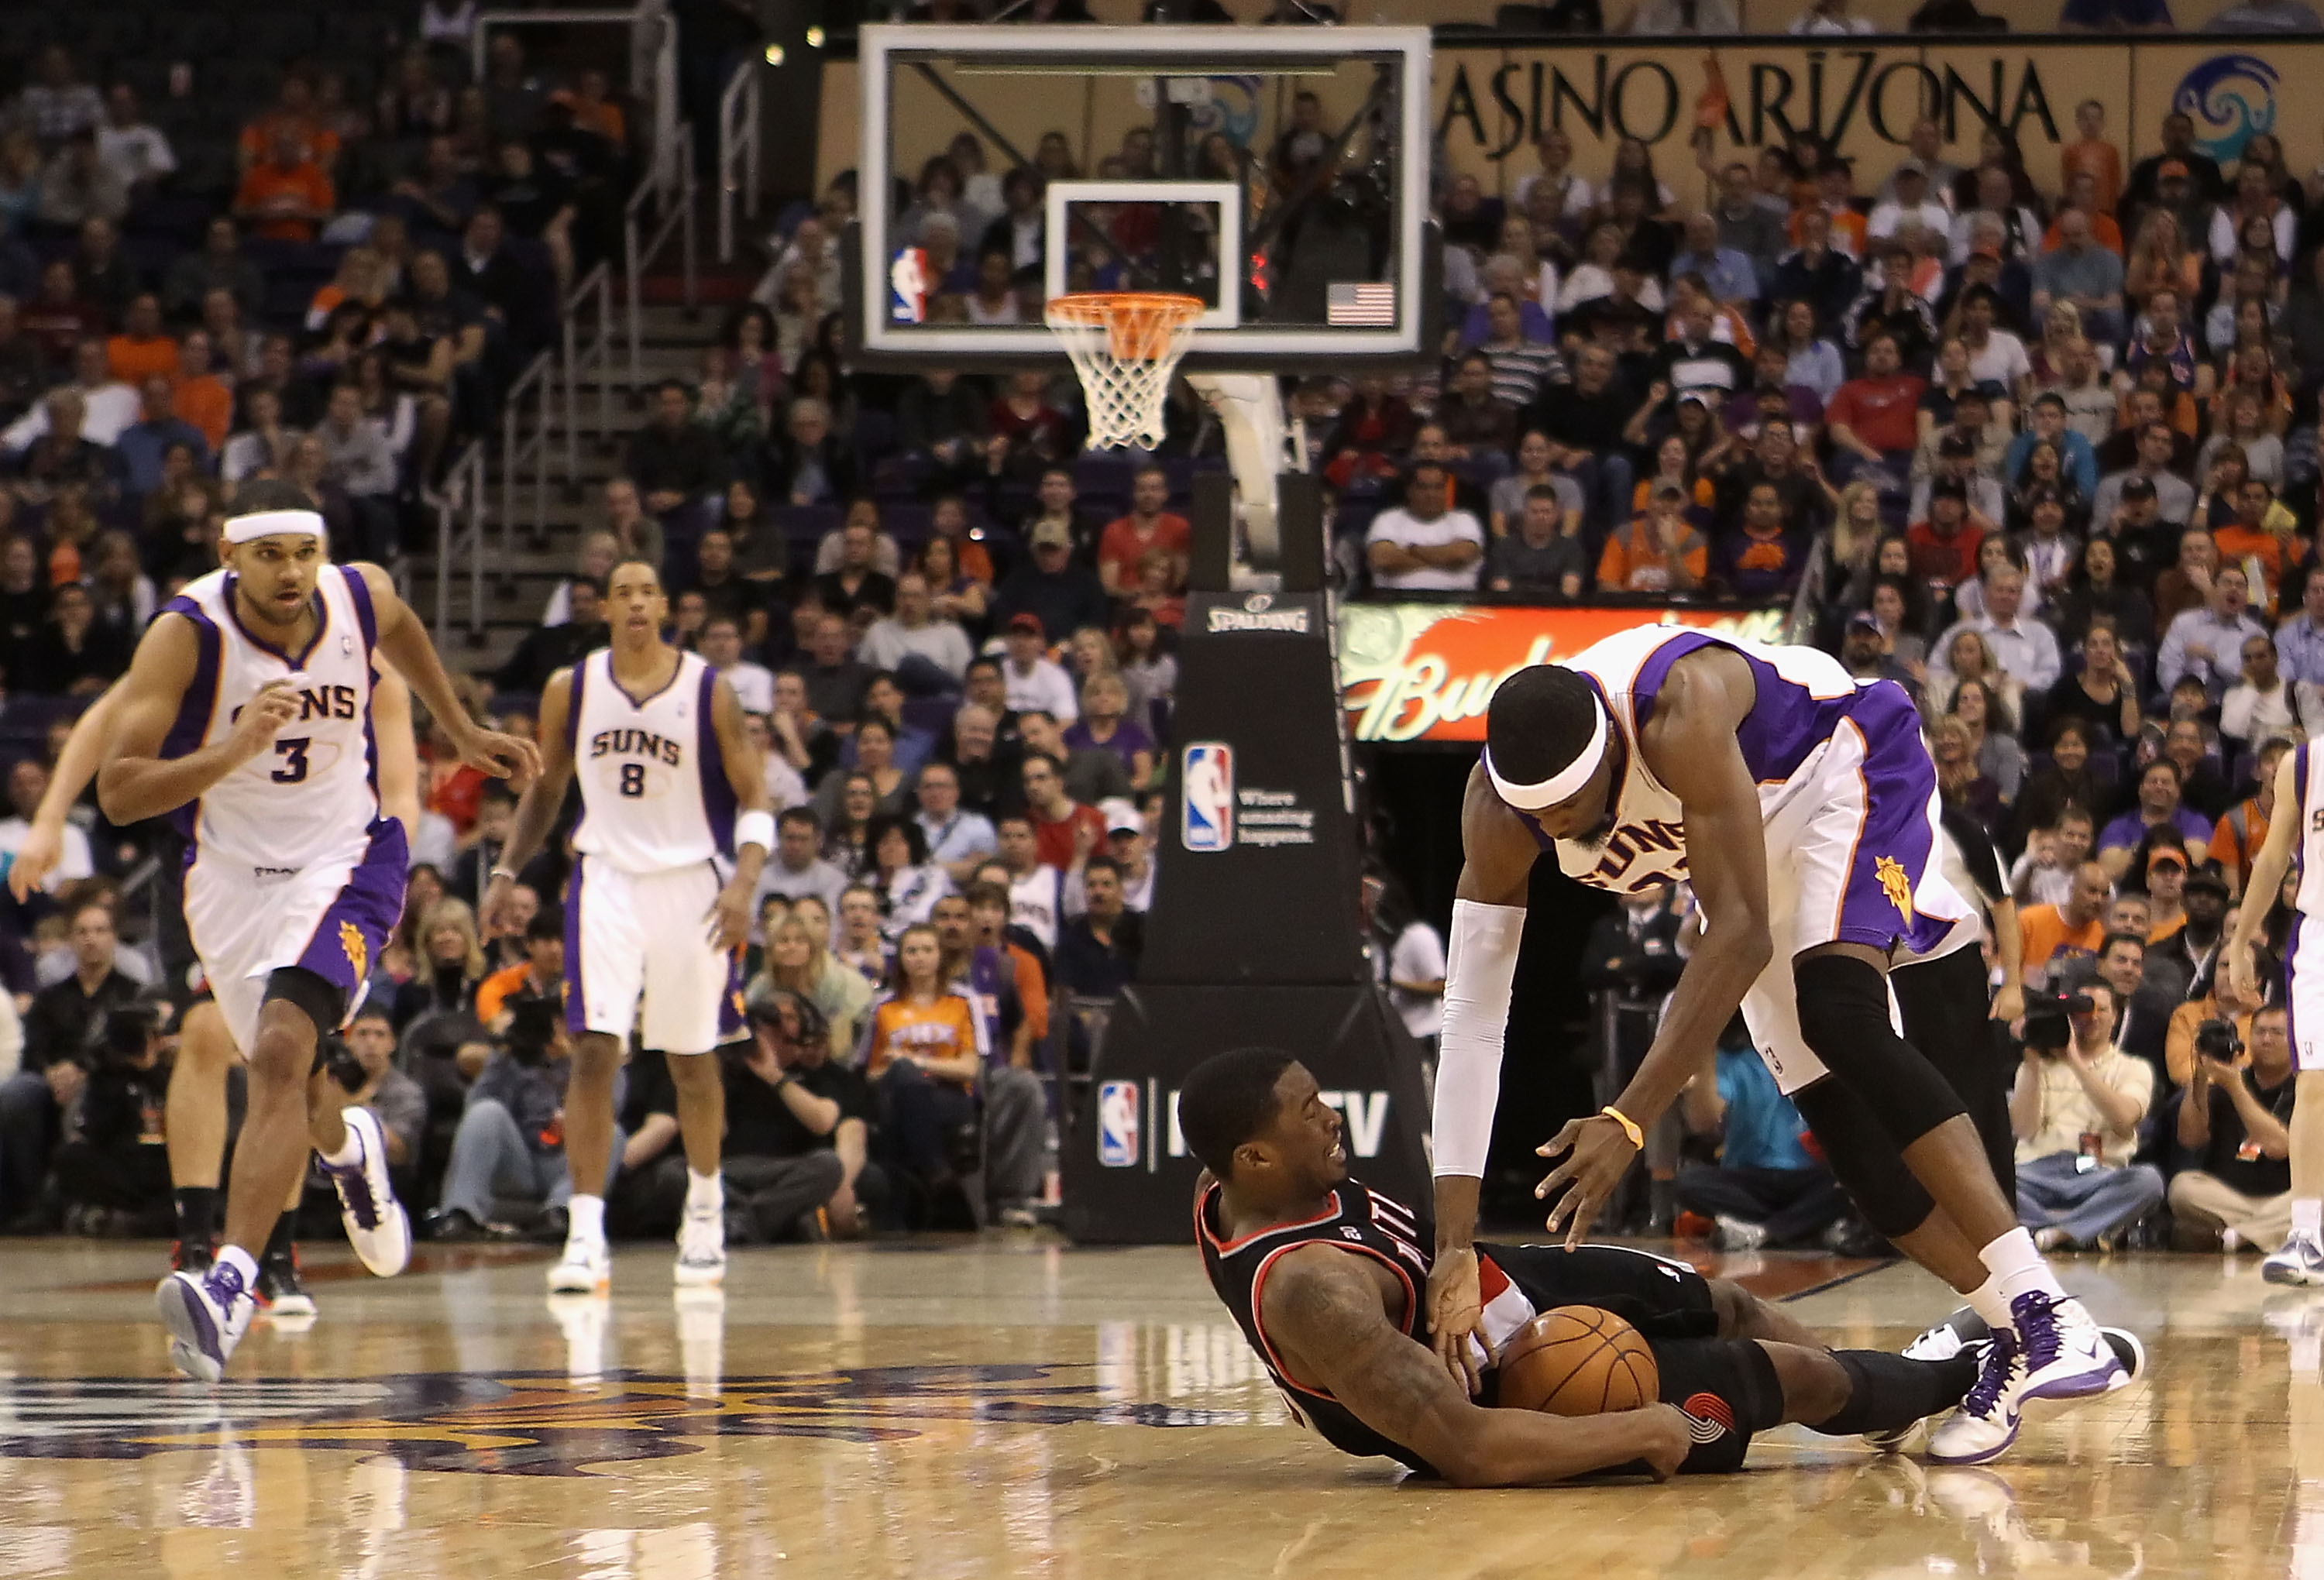 PHOENIX, AZ - JANUARY 14:  Hakim Warrick #21 of the Phoenix Suns dives for a loose ball with Wesley Matthews #2 of the Portland Trail Blazers during the NBA game at US Airways Center on January 14, 2011 in Phoenix, Arizona. The Suns defeated the Trail Bla